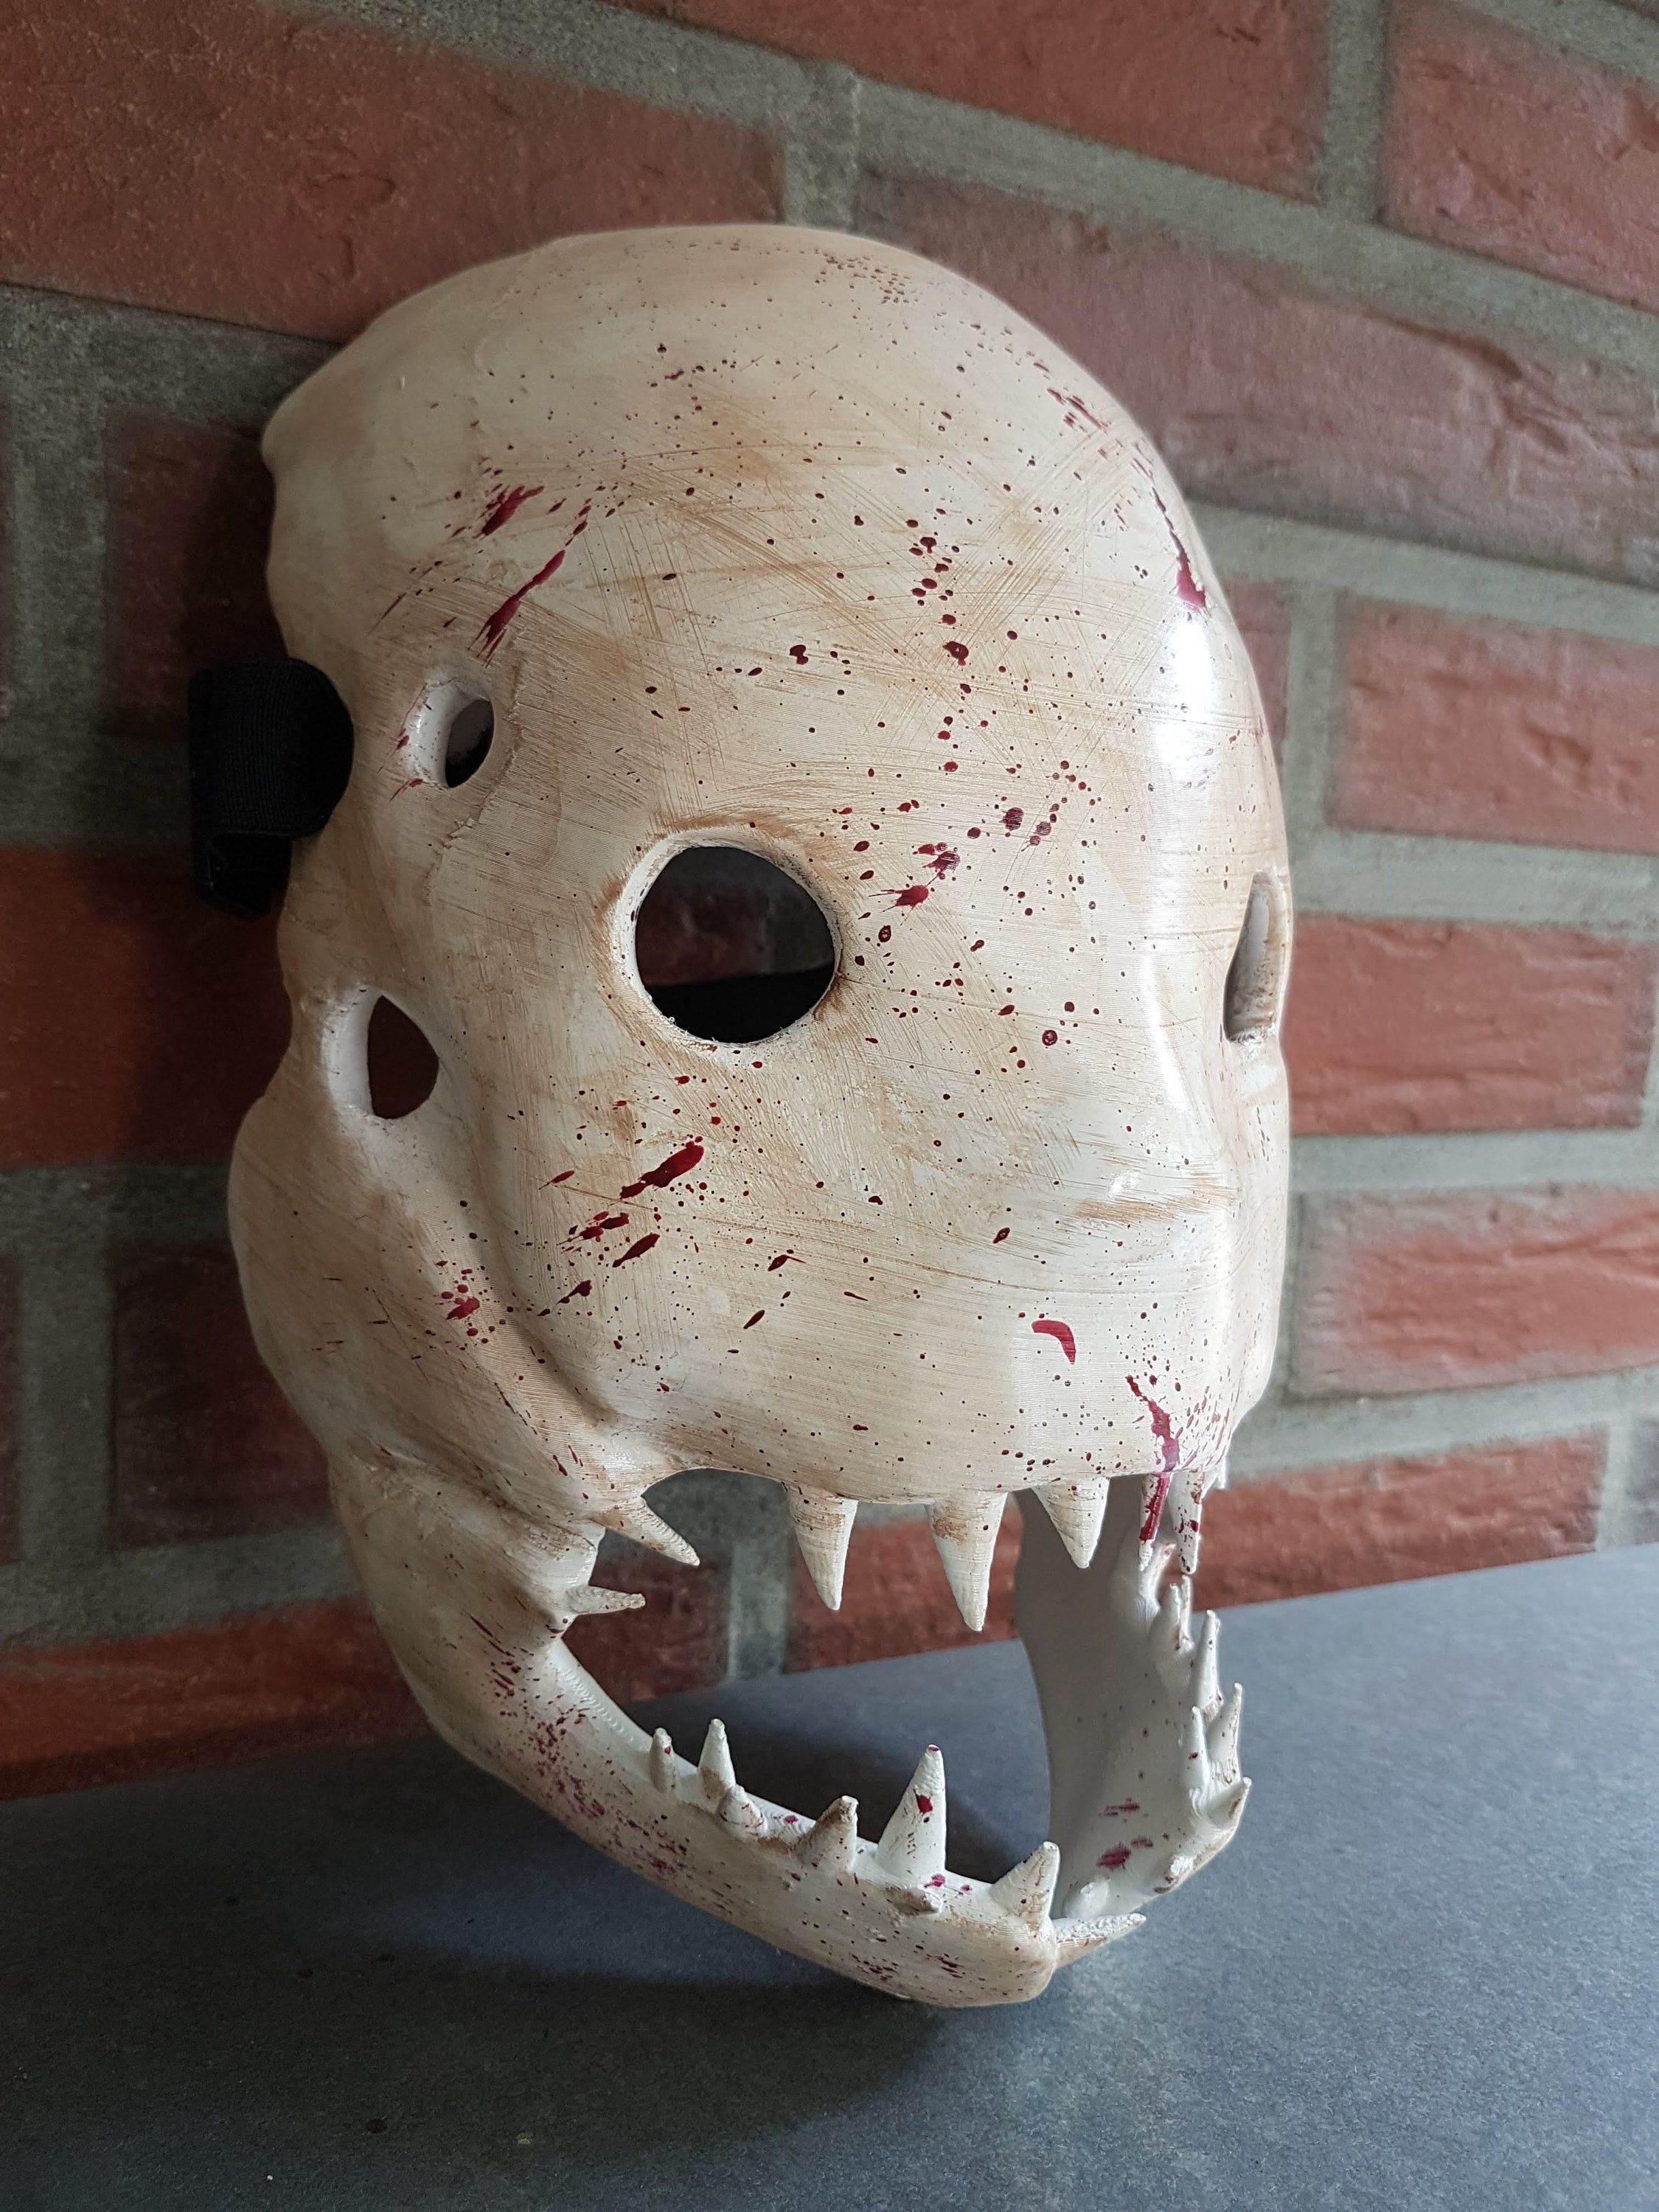 Trapper Hhunter Halloween Costumes 2020 Trapper Mask Dead By Daylight Inspired Cosplay Halloween Costume